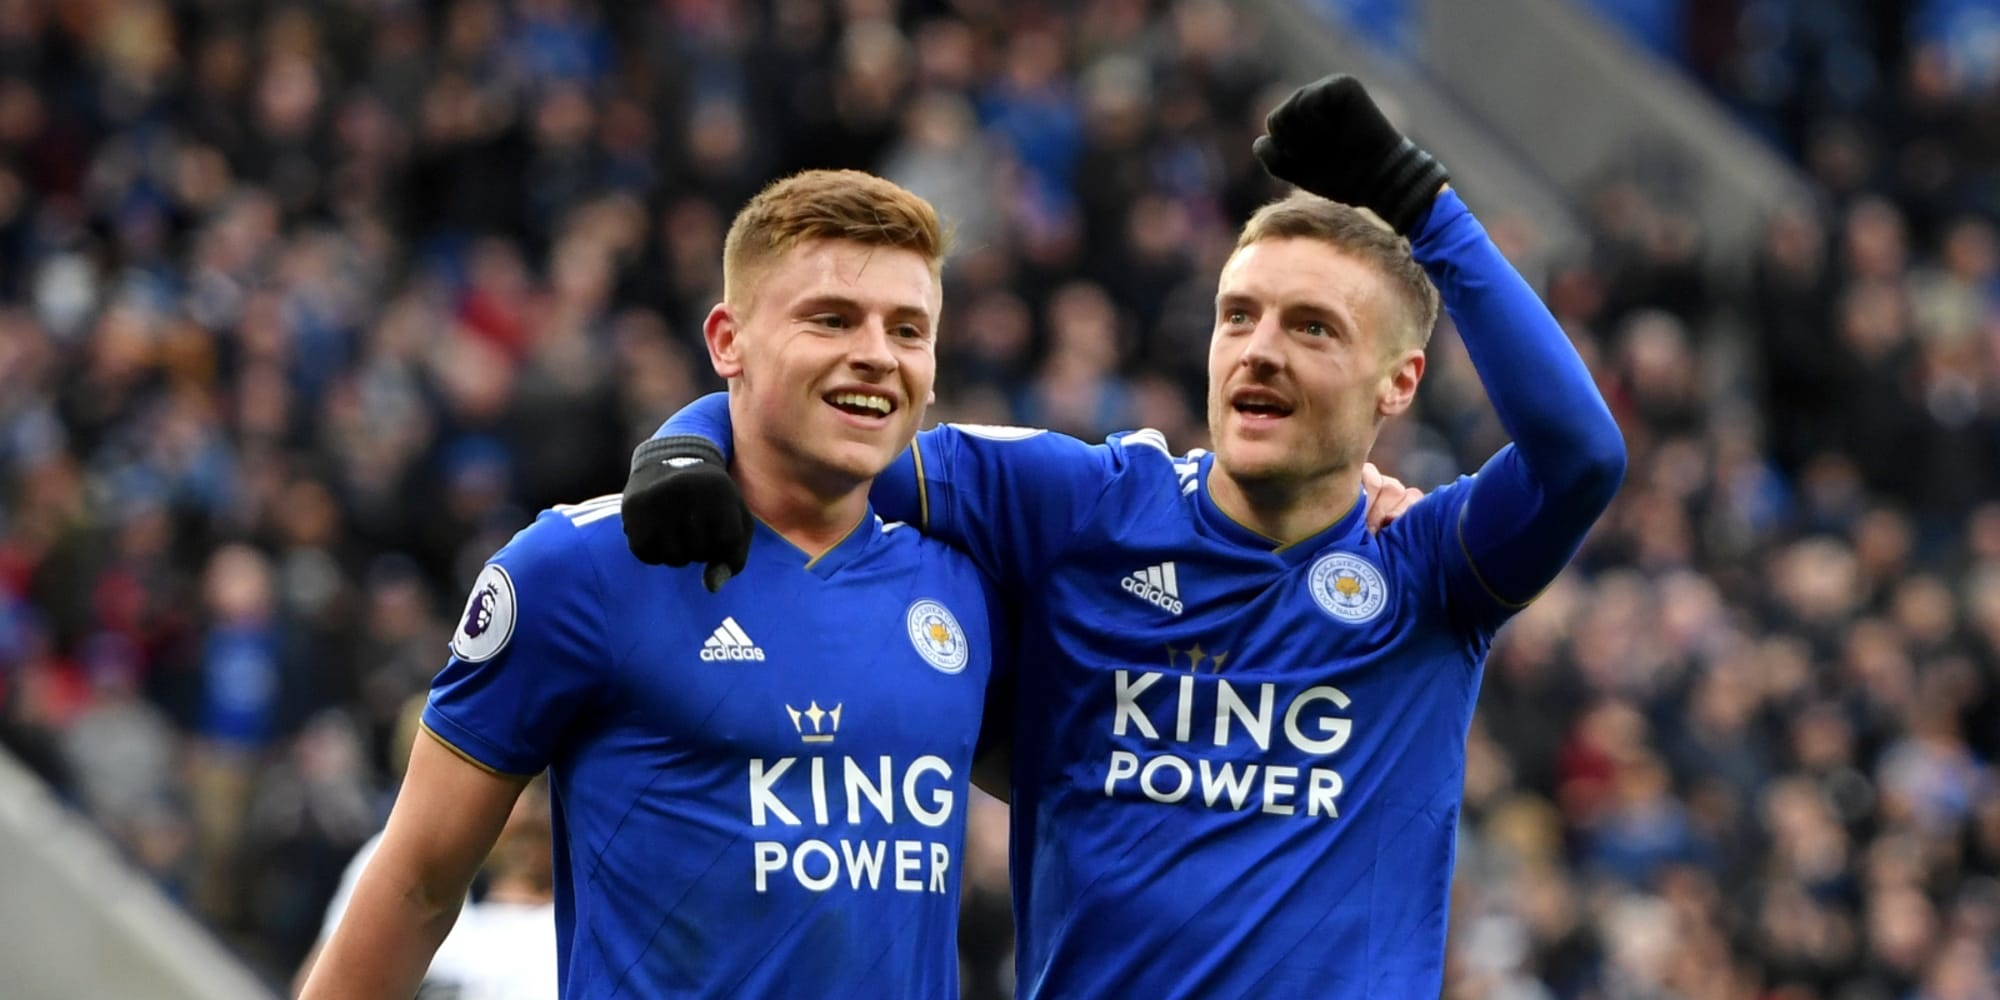 Leicester scrambling to agree extension with forward amid Liverpool interest – report